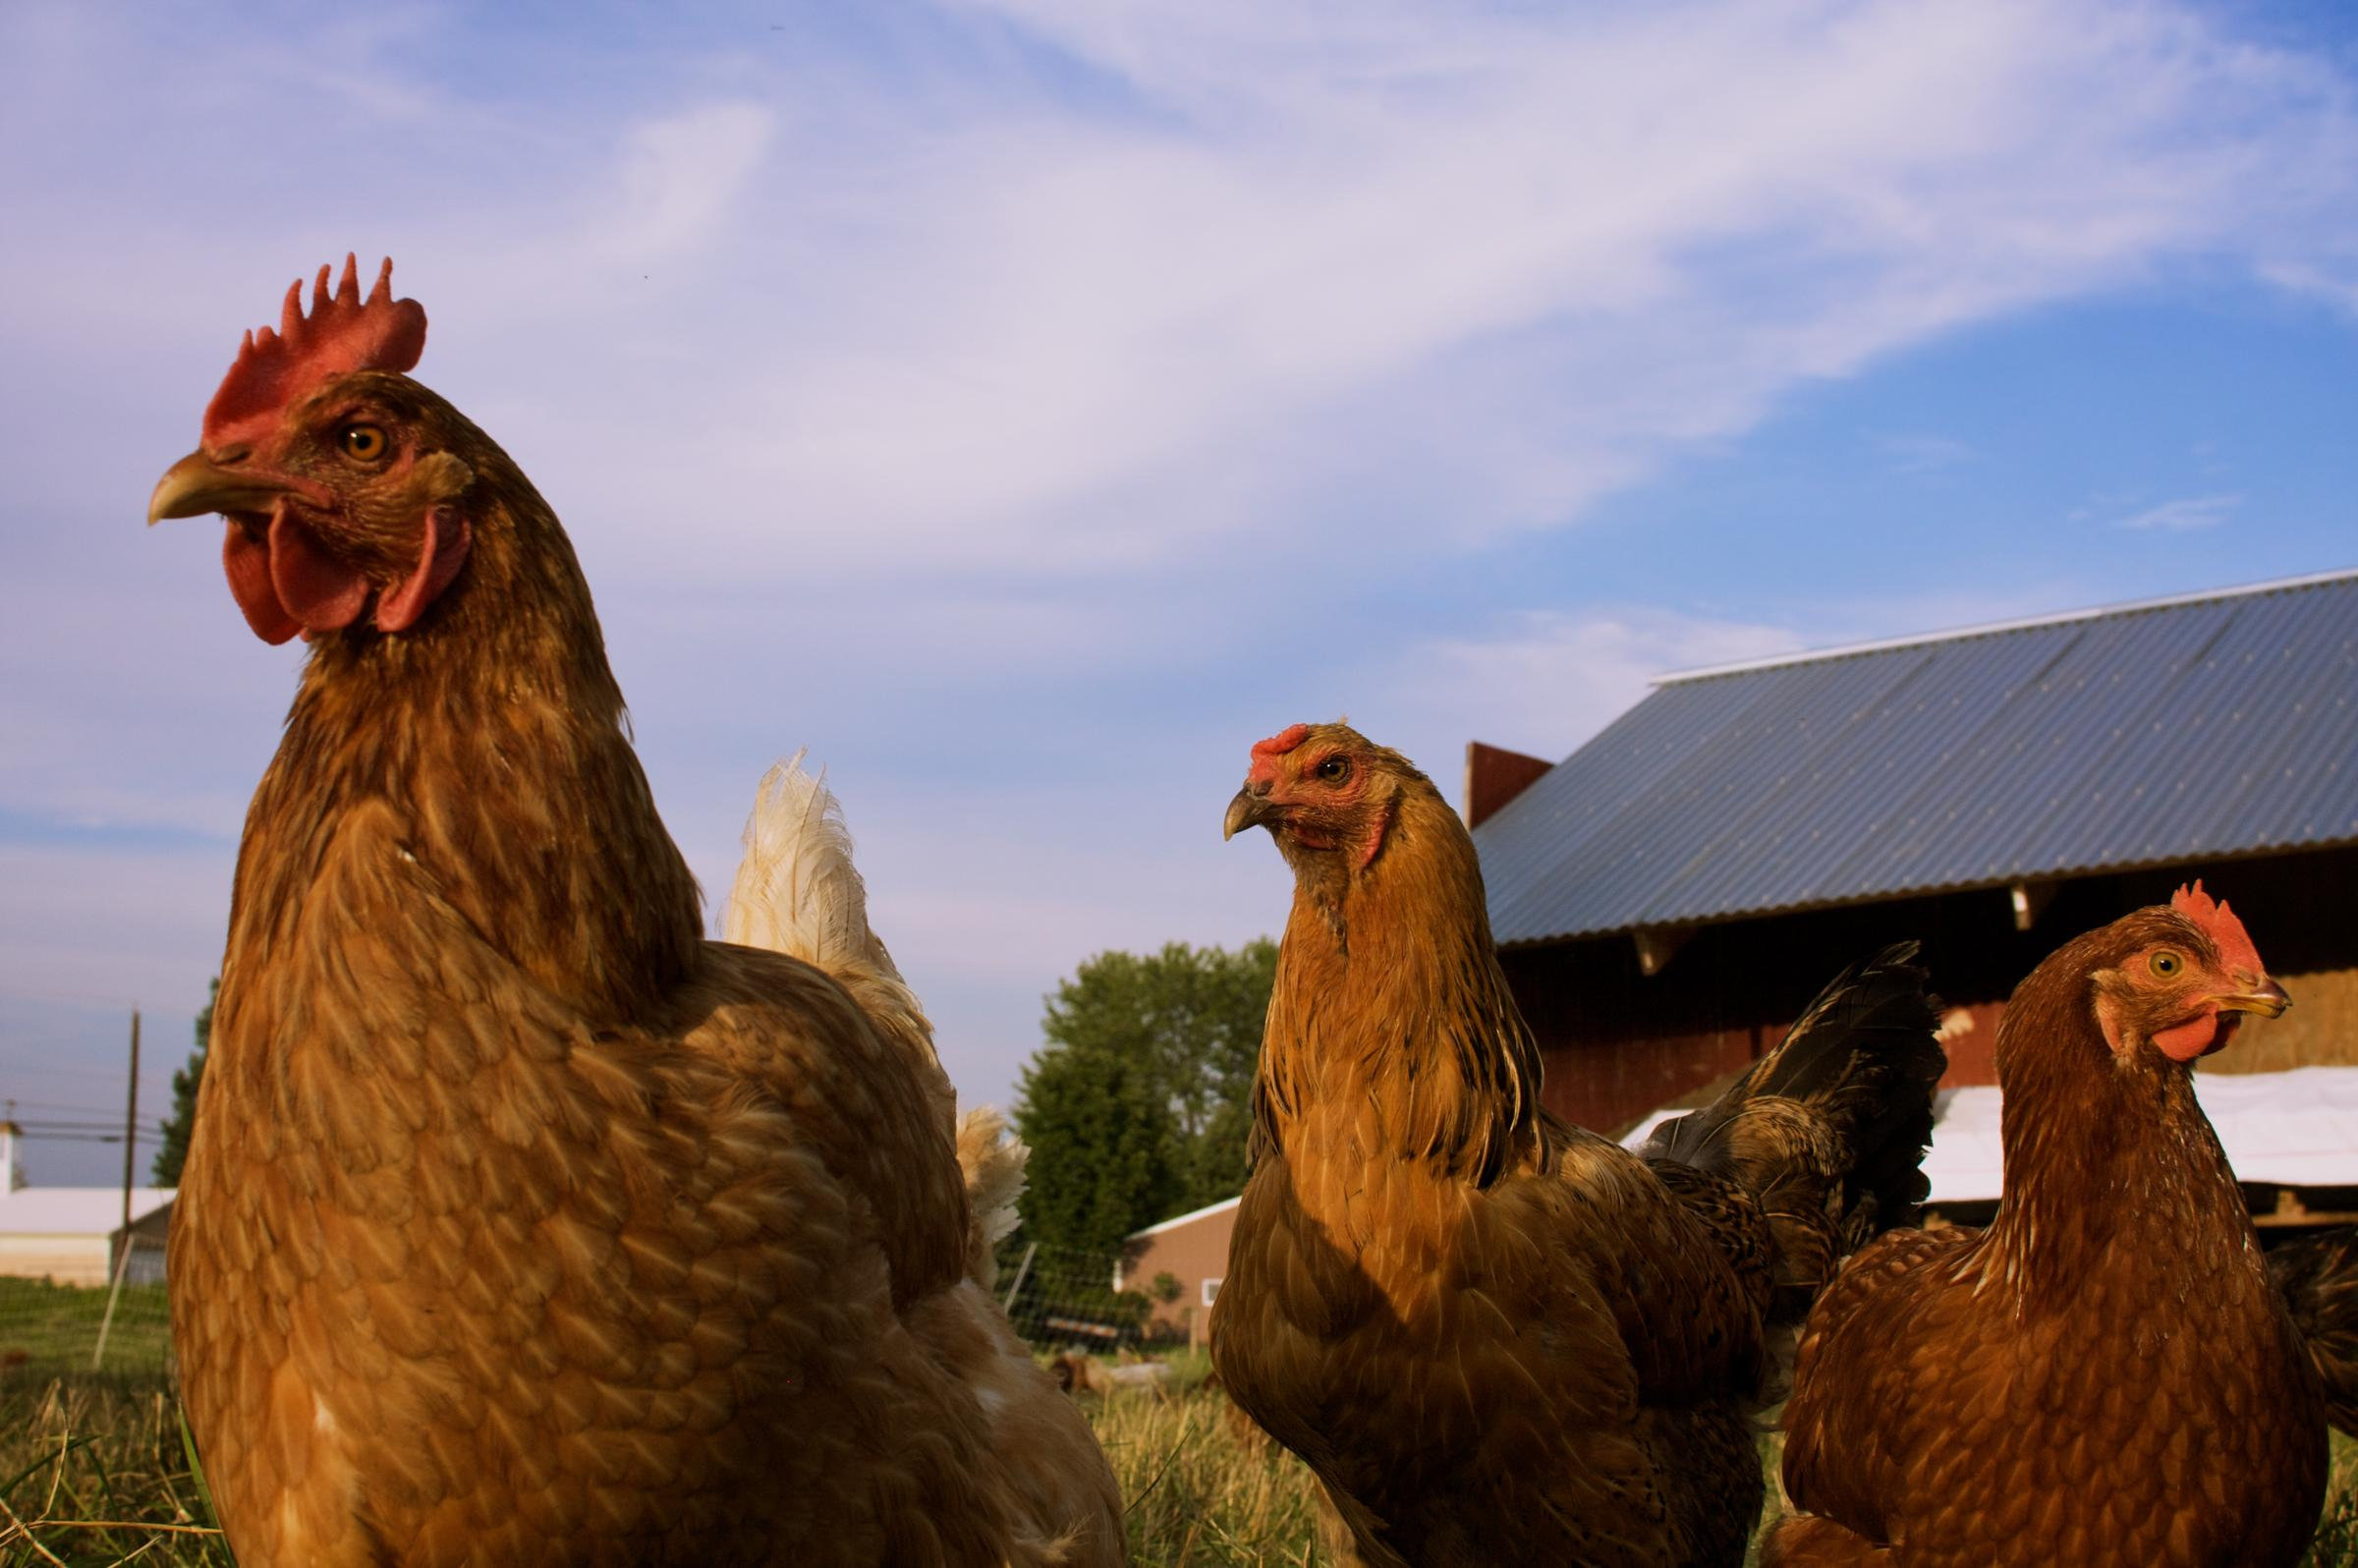 More chickens in Alabama confirmed with 'low-pathogenic' avian flu